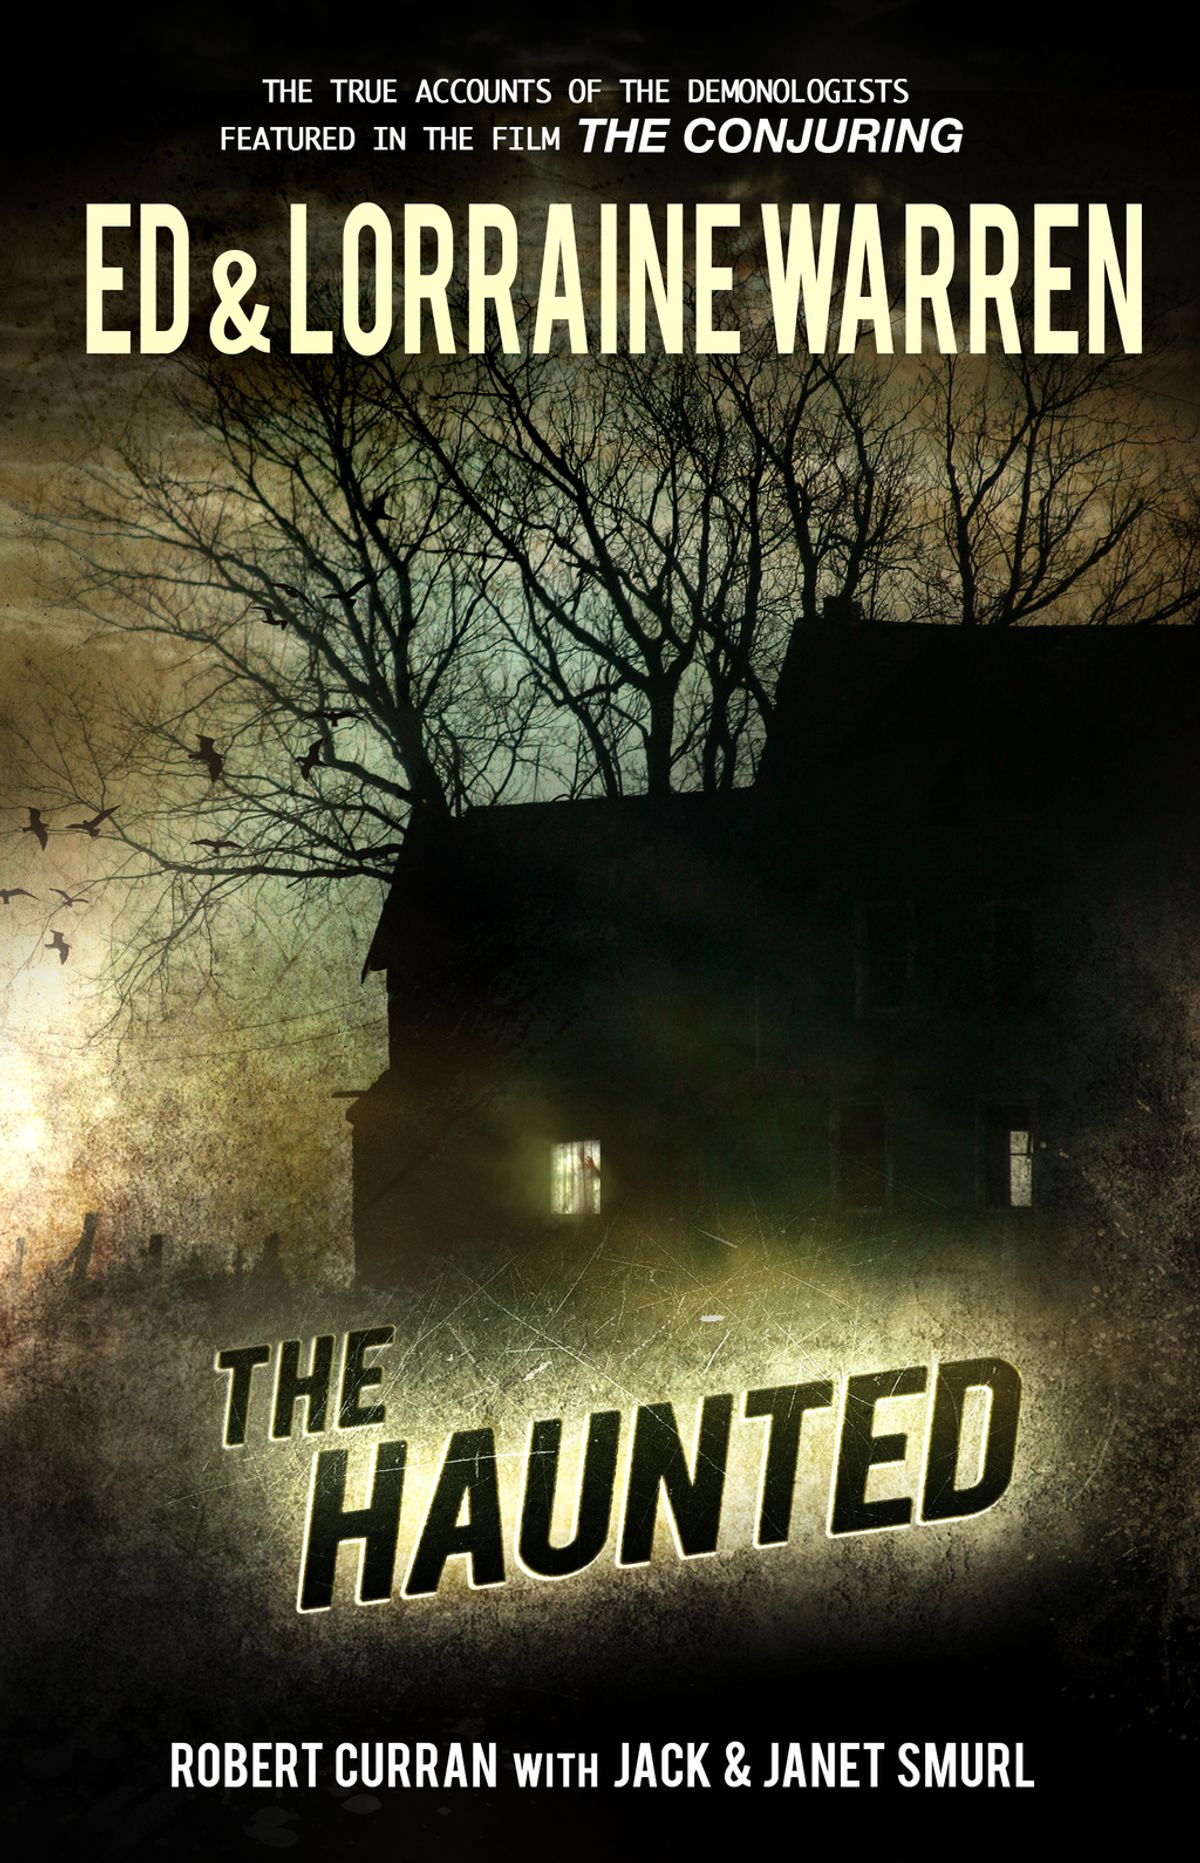 'The Haunted' by Robert Curran